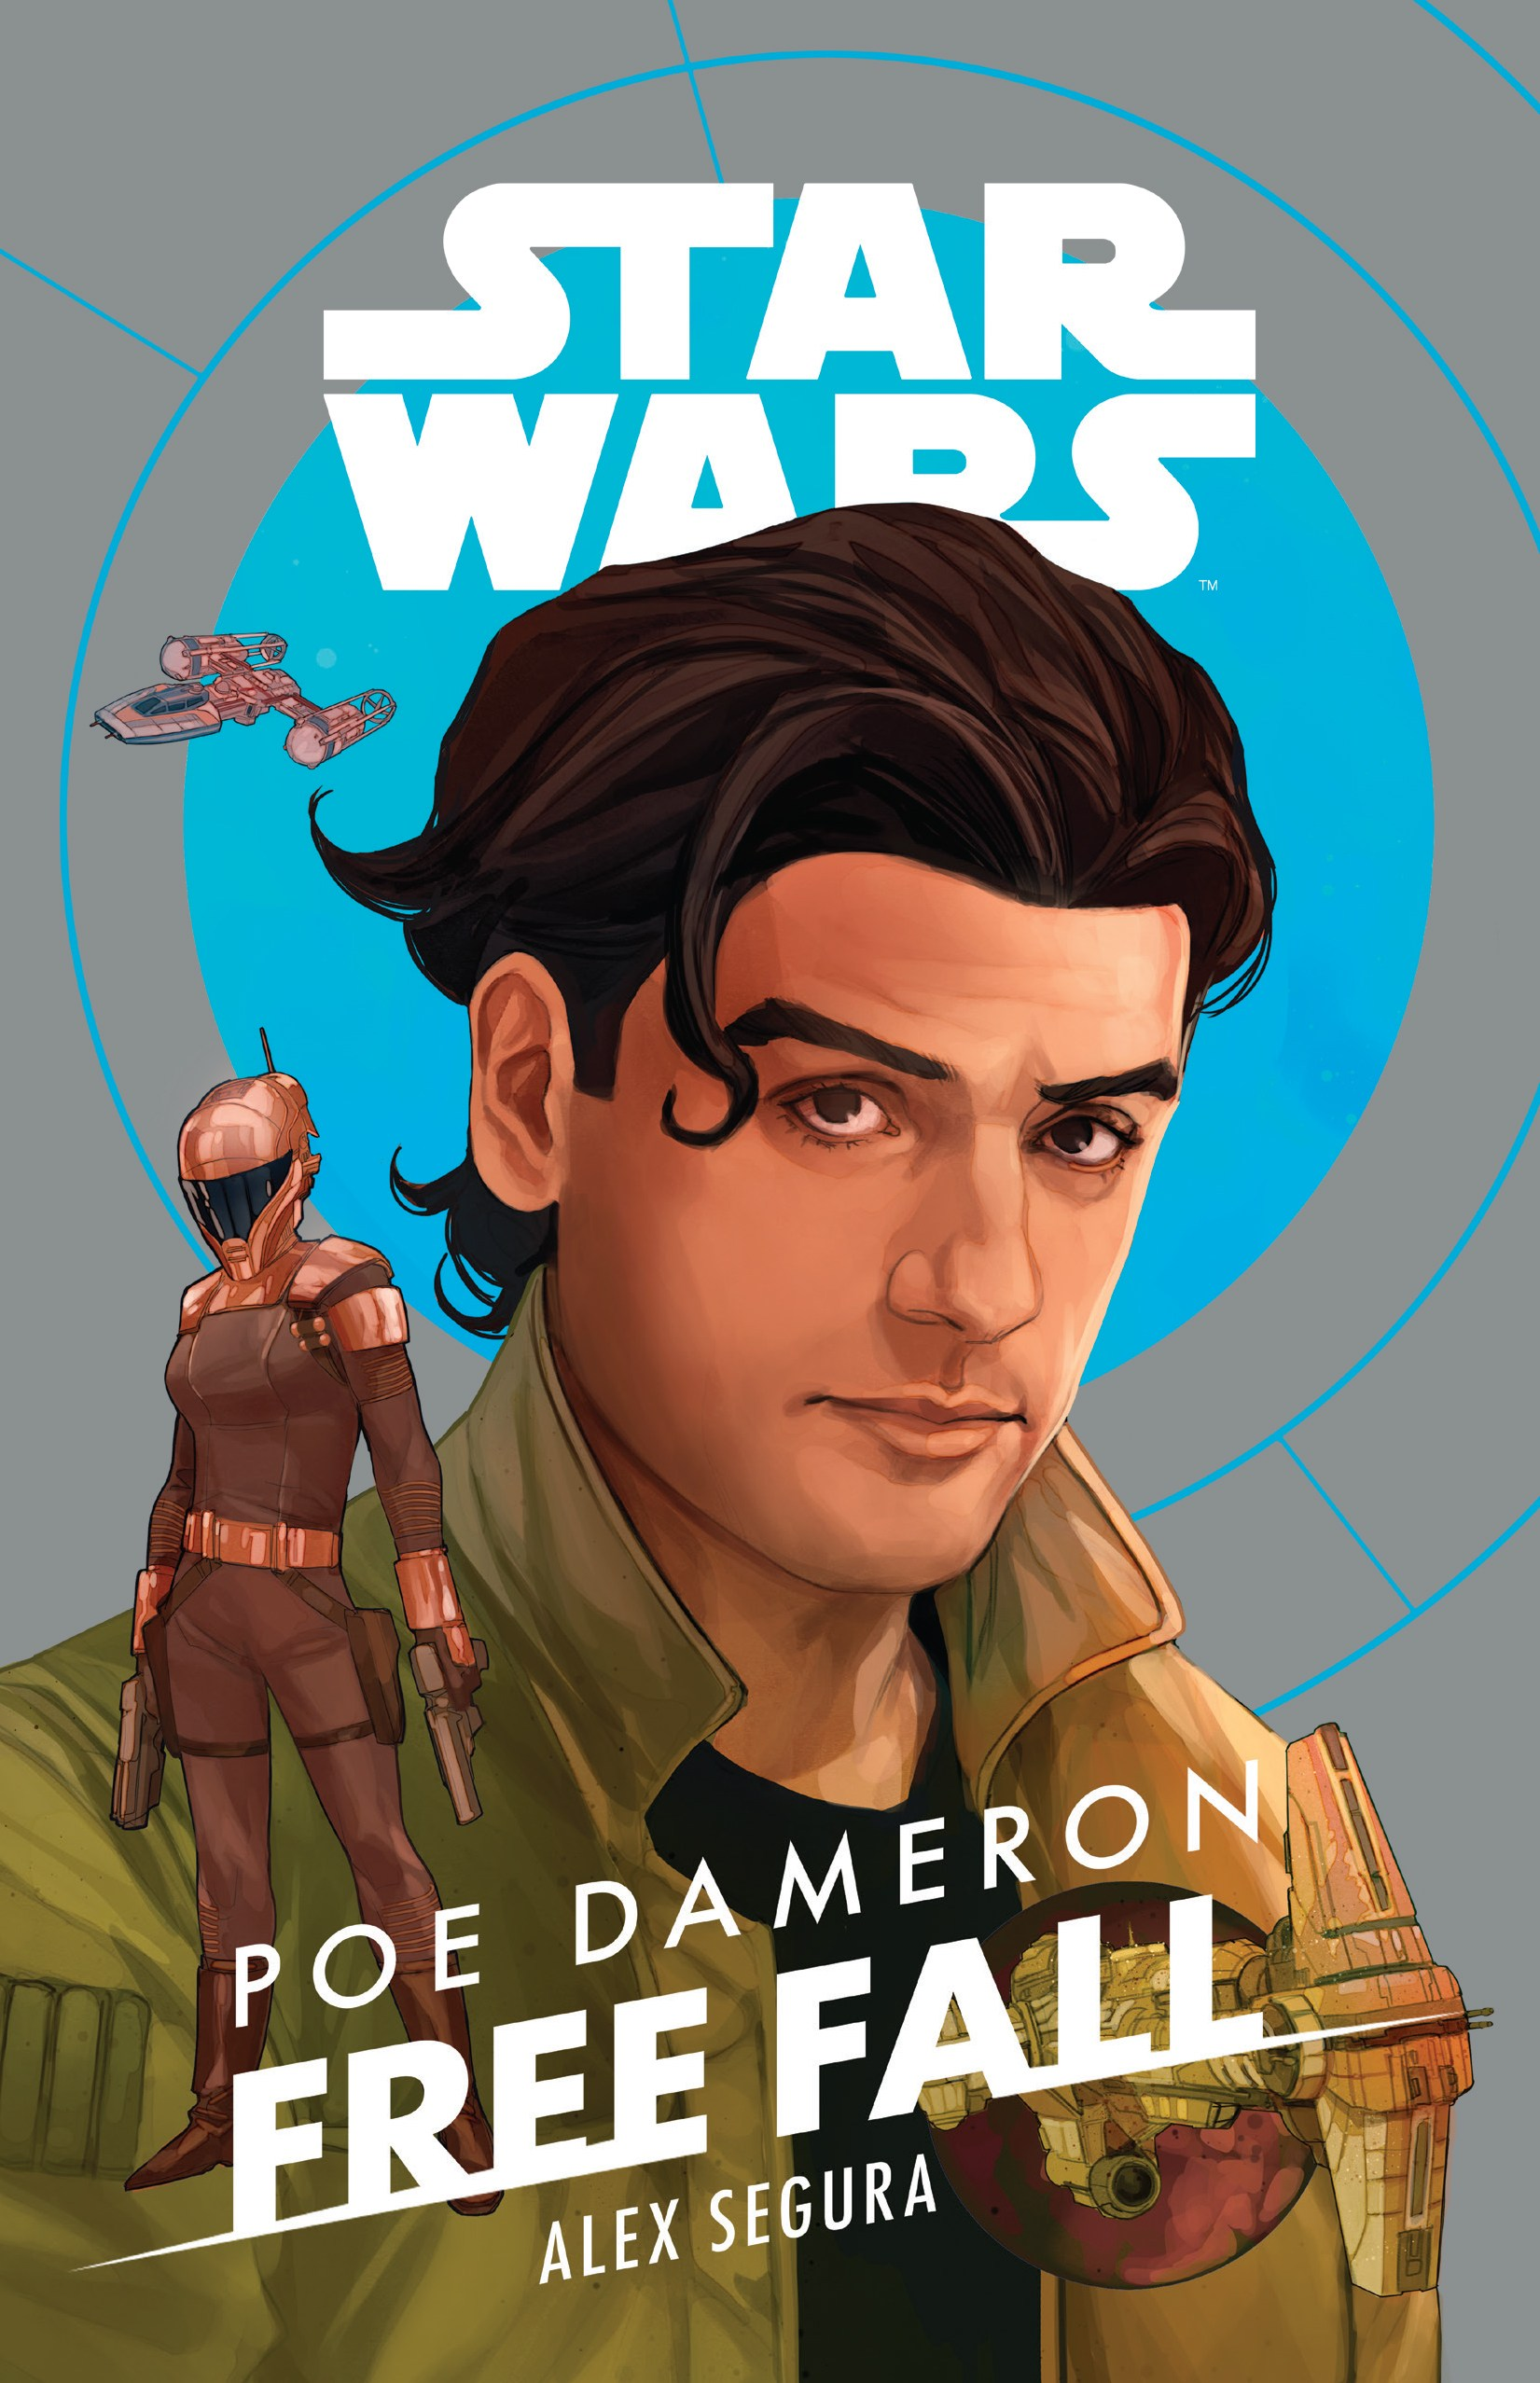 Star Wars Poe Dameron Free Fall Cover